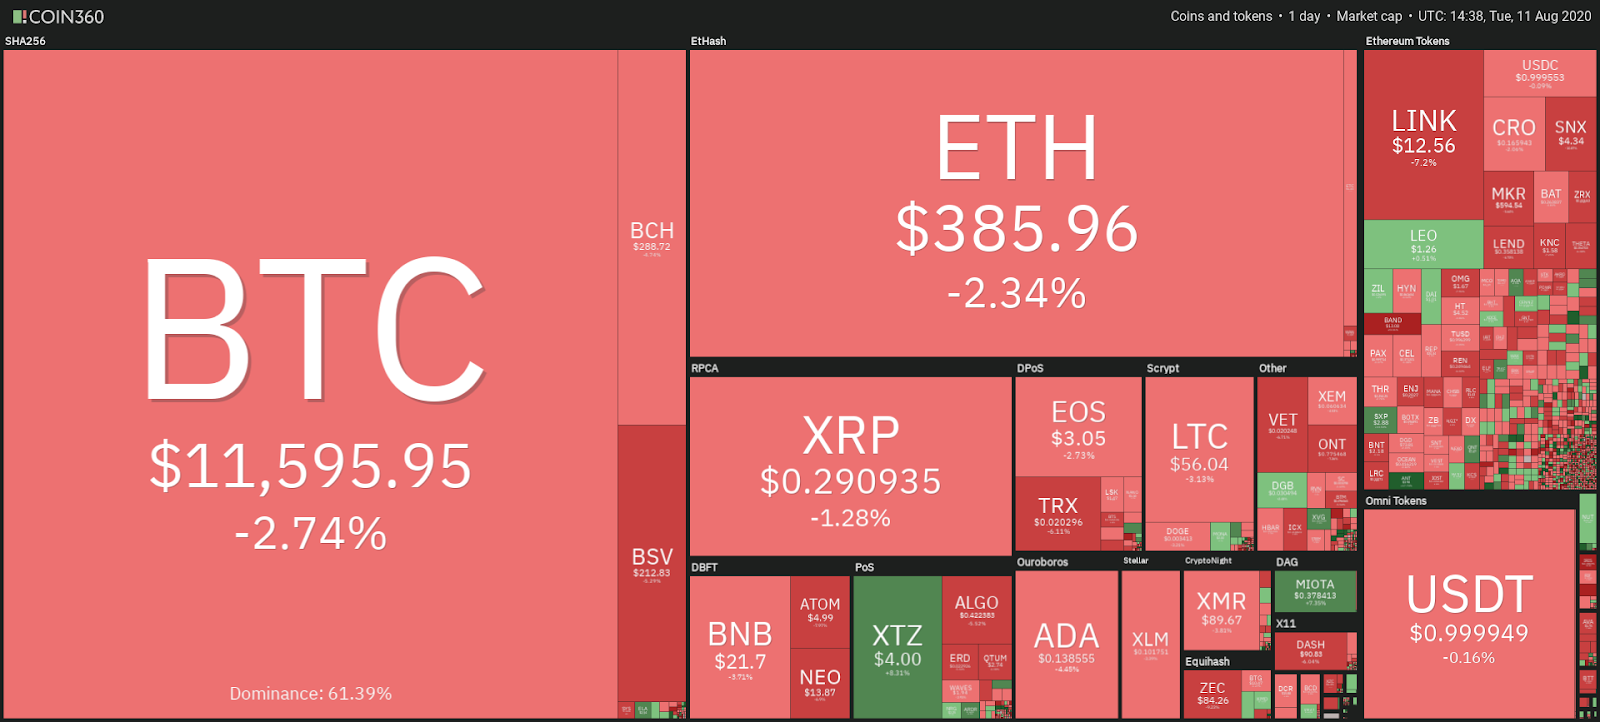 Snapshot of Cryptocurrency's Daily Market Performance